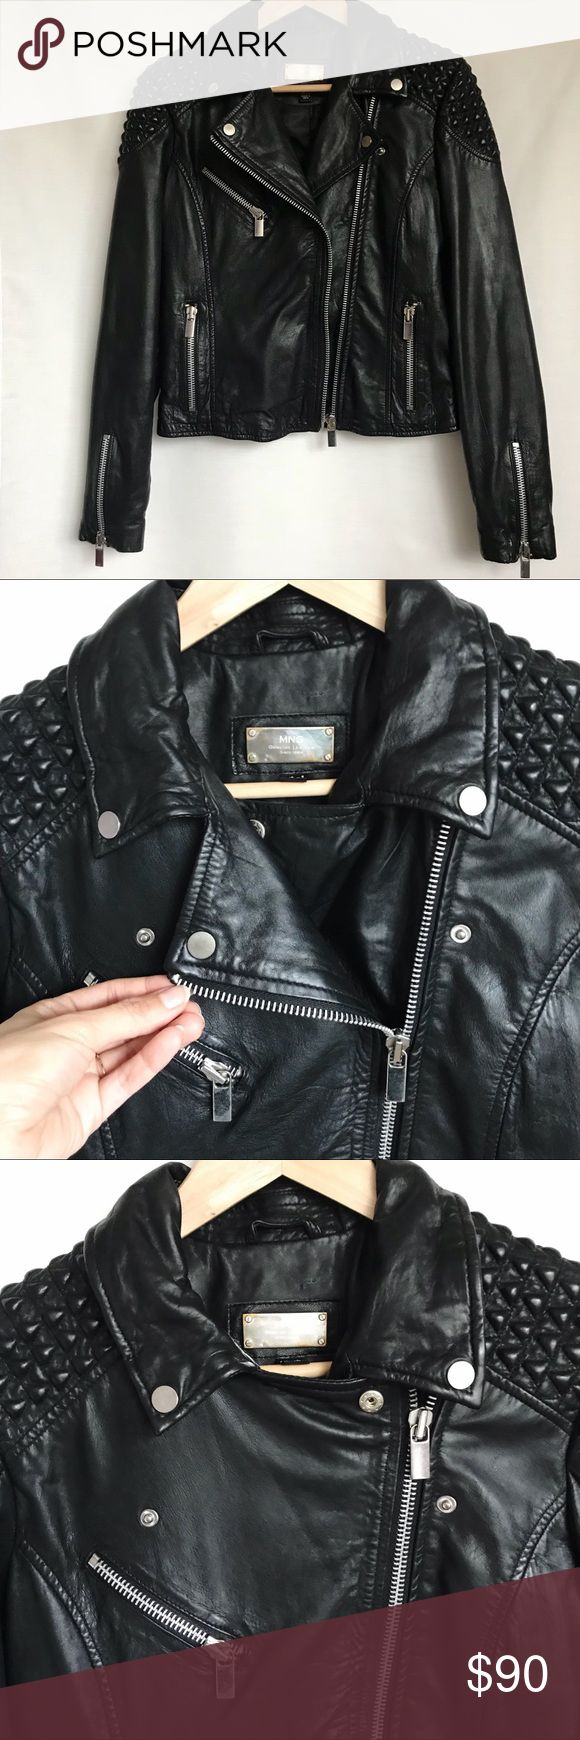 Mango Leather Jacket A Flawless Leather Biker Jacket! Brand: Mango Details: Genuine Leather, Zipper Details on Sleeve, Zipper Pockets, Textured Shoulders, Fully Lined, Leather Treated, Size X-Small.  Condition: Only Been Worn Once. Mango Jackets & Coats